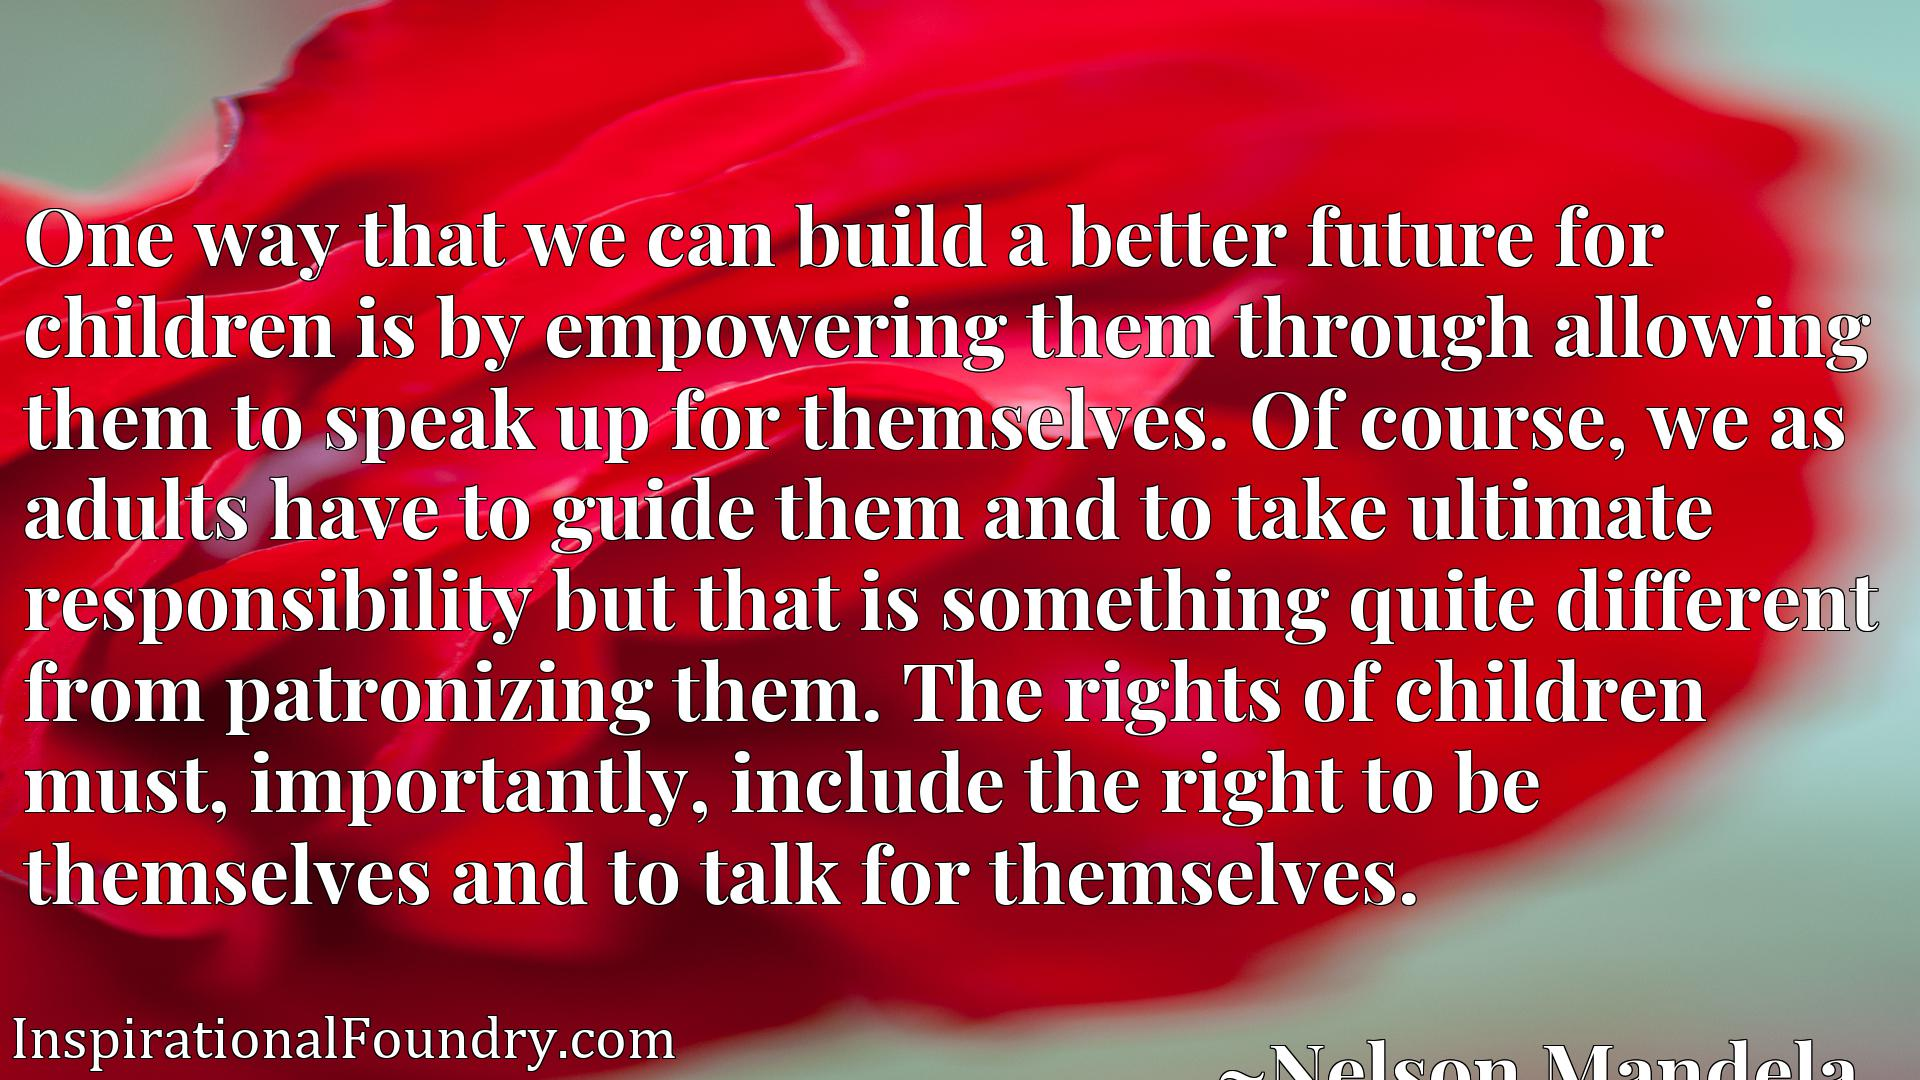 Quote Picture :One way that we can build a better future for children is by empowering them through allowing them to speak up for themselves. Of course, we as adults have to guide them and to take ultimate responsibility but that is something quite different from patronizing them. The rights of children must, importantly, include the right to be themselves and to talk for themselves.